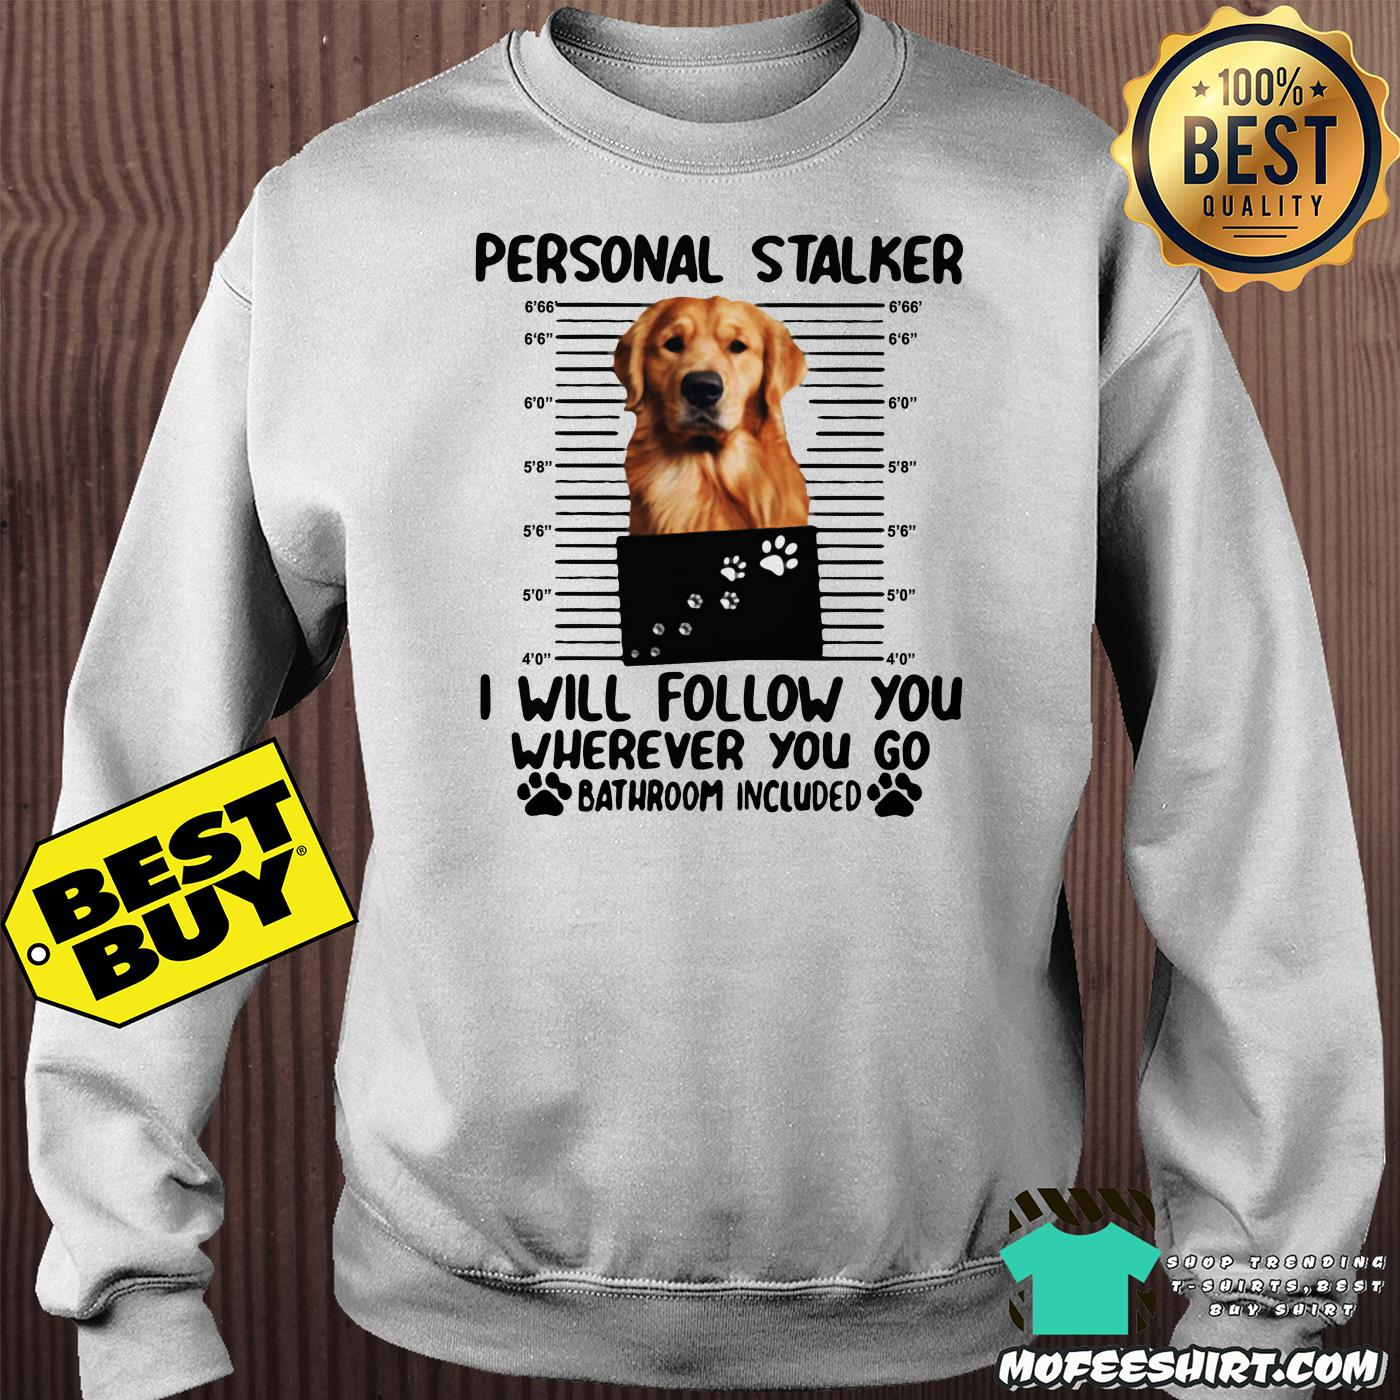 golden personal stalker i will follow you wherever you go bathroom included sweatshirt - Golden Personal Stalker I Will Follow You Wherever You Go Bathroom Included shirt